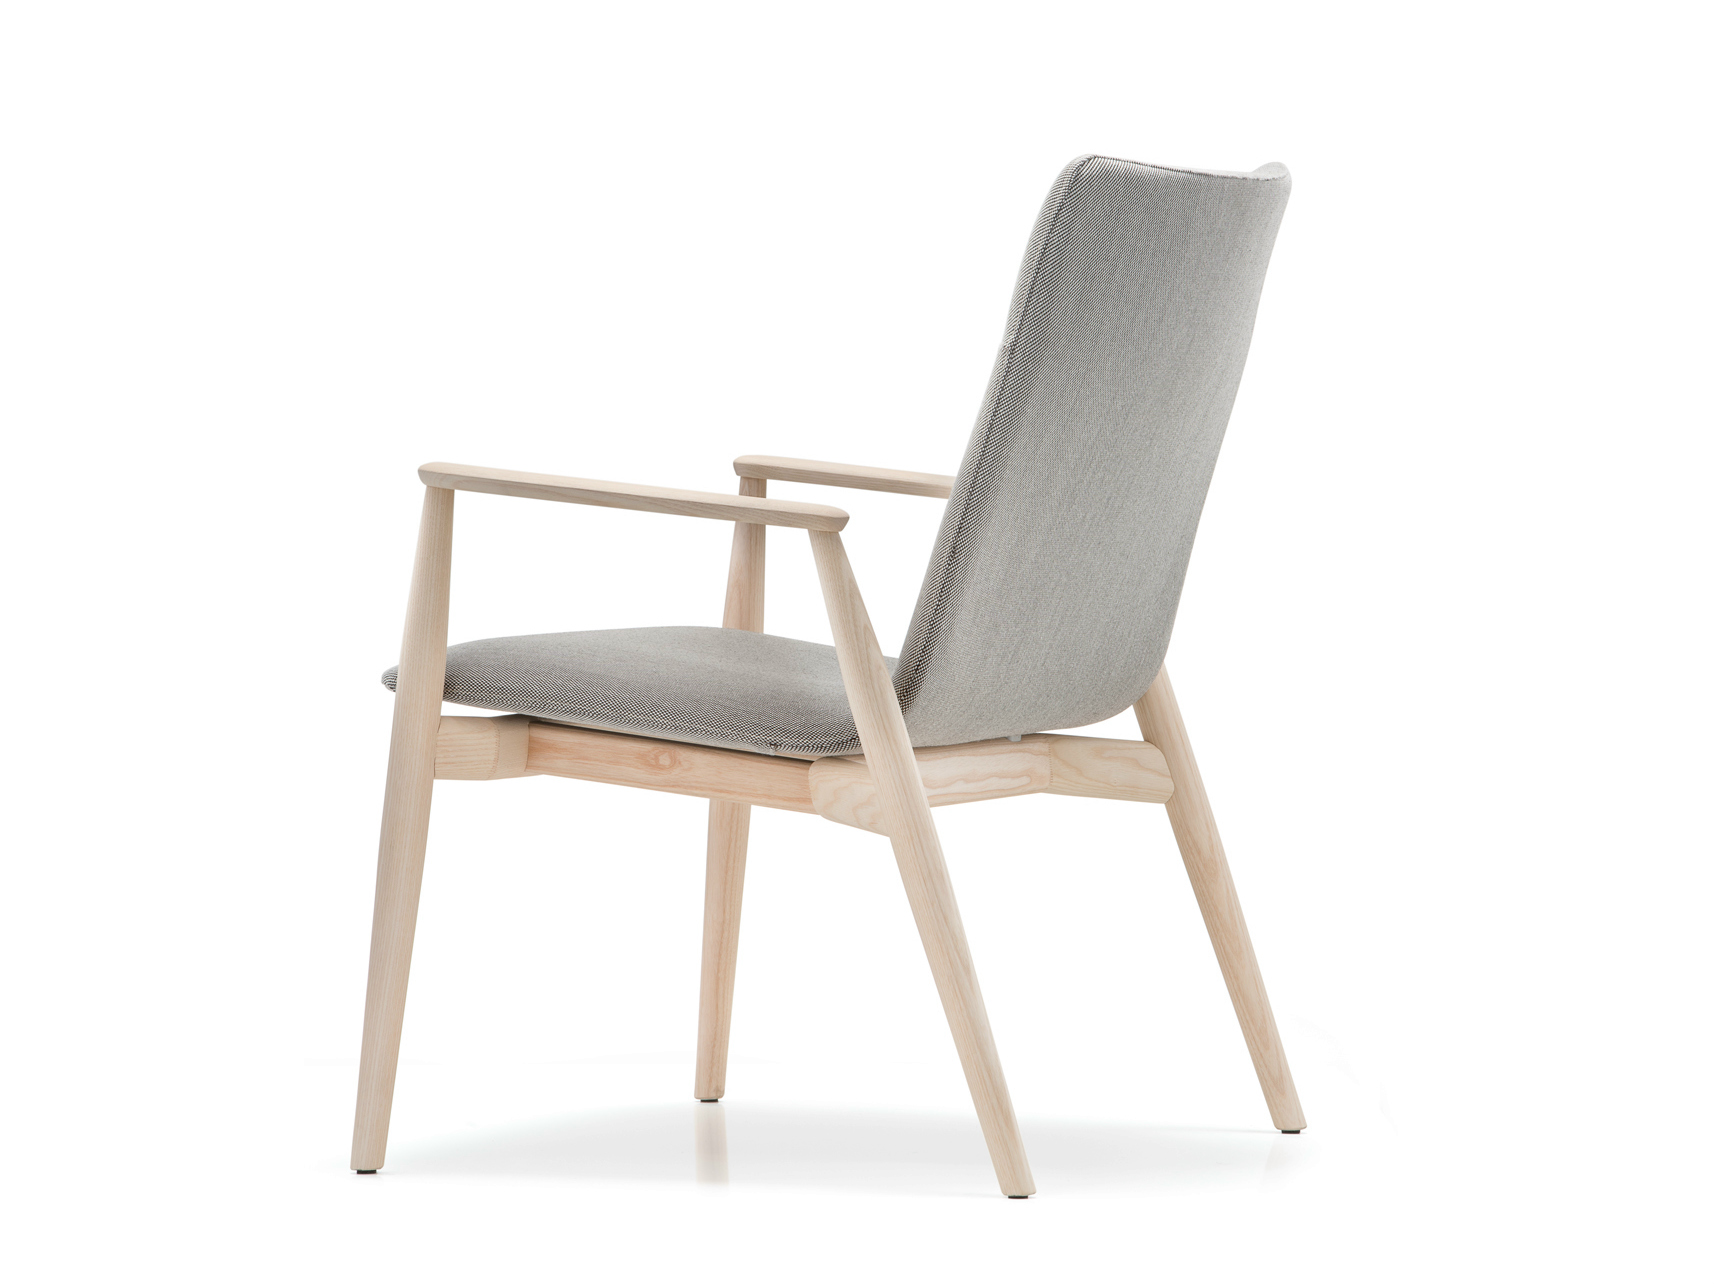 Malm 246 Relax Lounge Chair By Pedrali Sohomod Blog